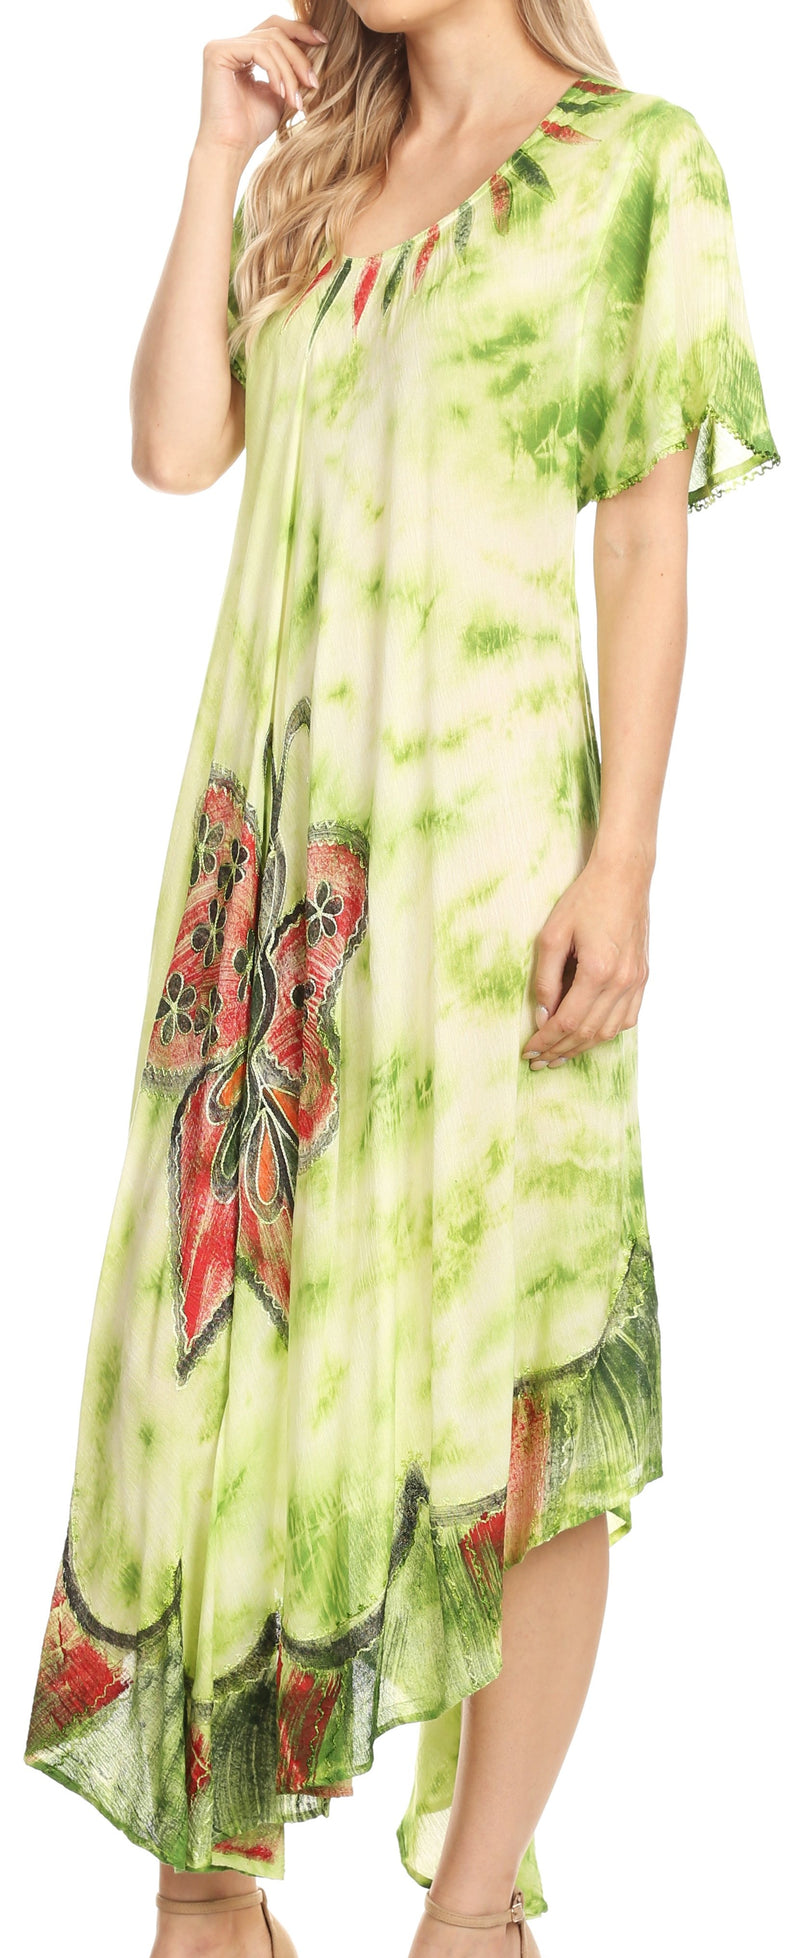 Sakkas Nalani Womens Flowy Caftan Tie Dye Summer Dress Cover up Relax Fit